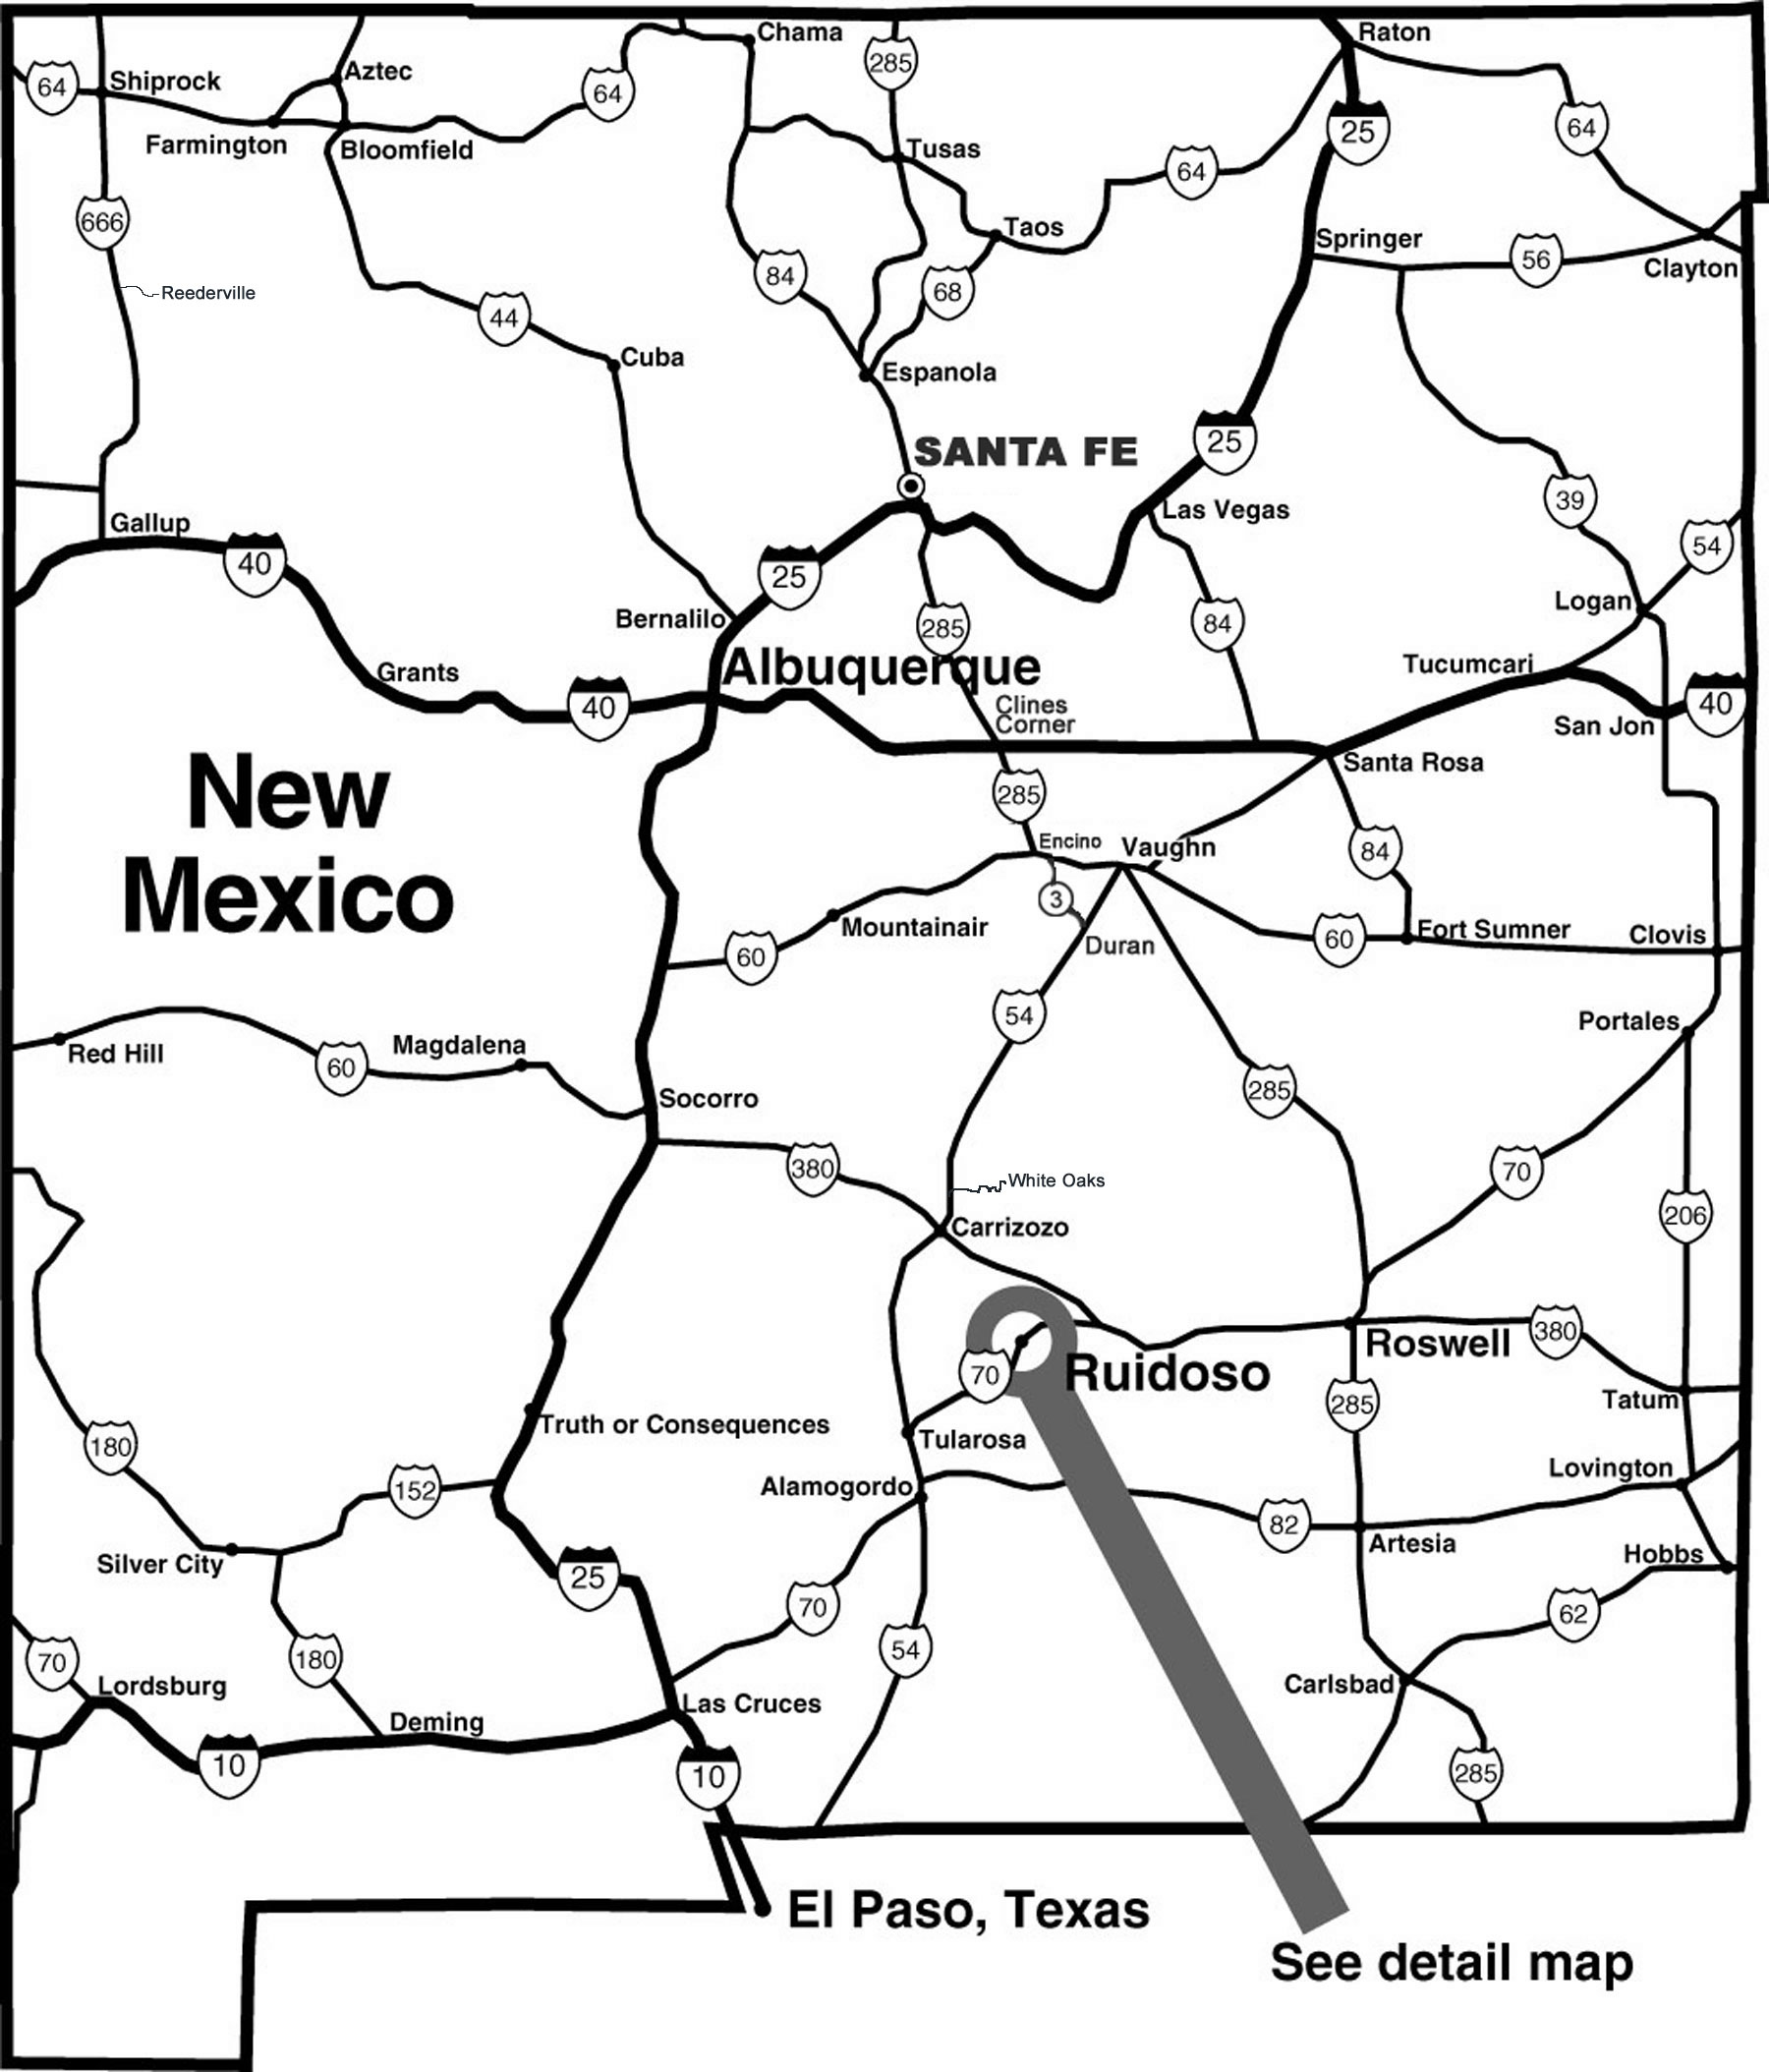 New Mexico Tourist Map New Mexico mappery